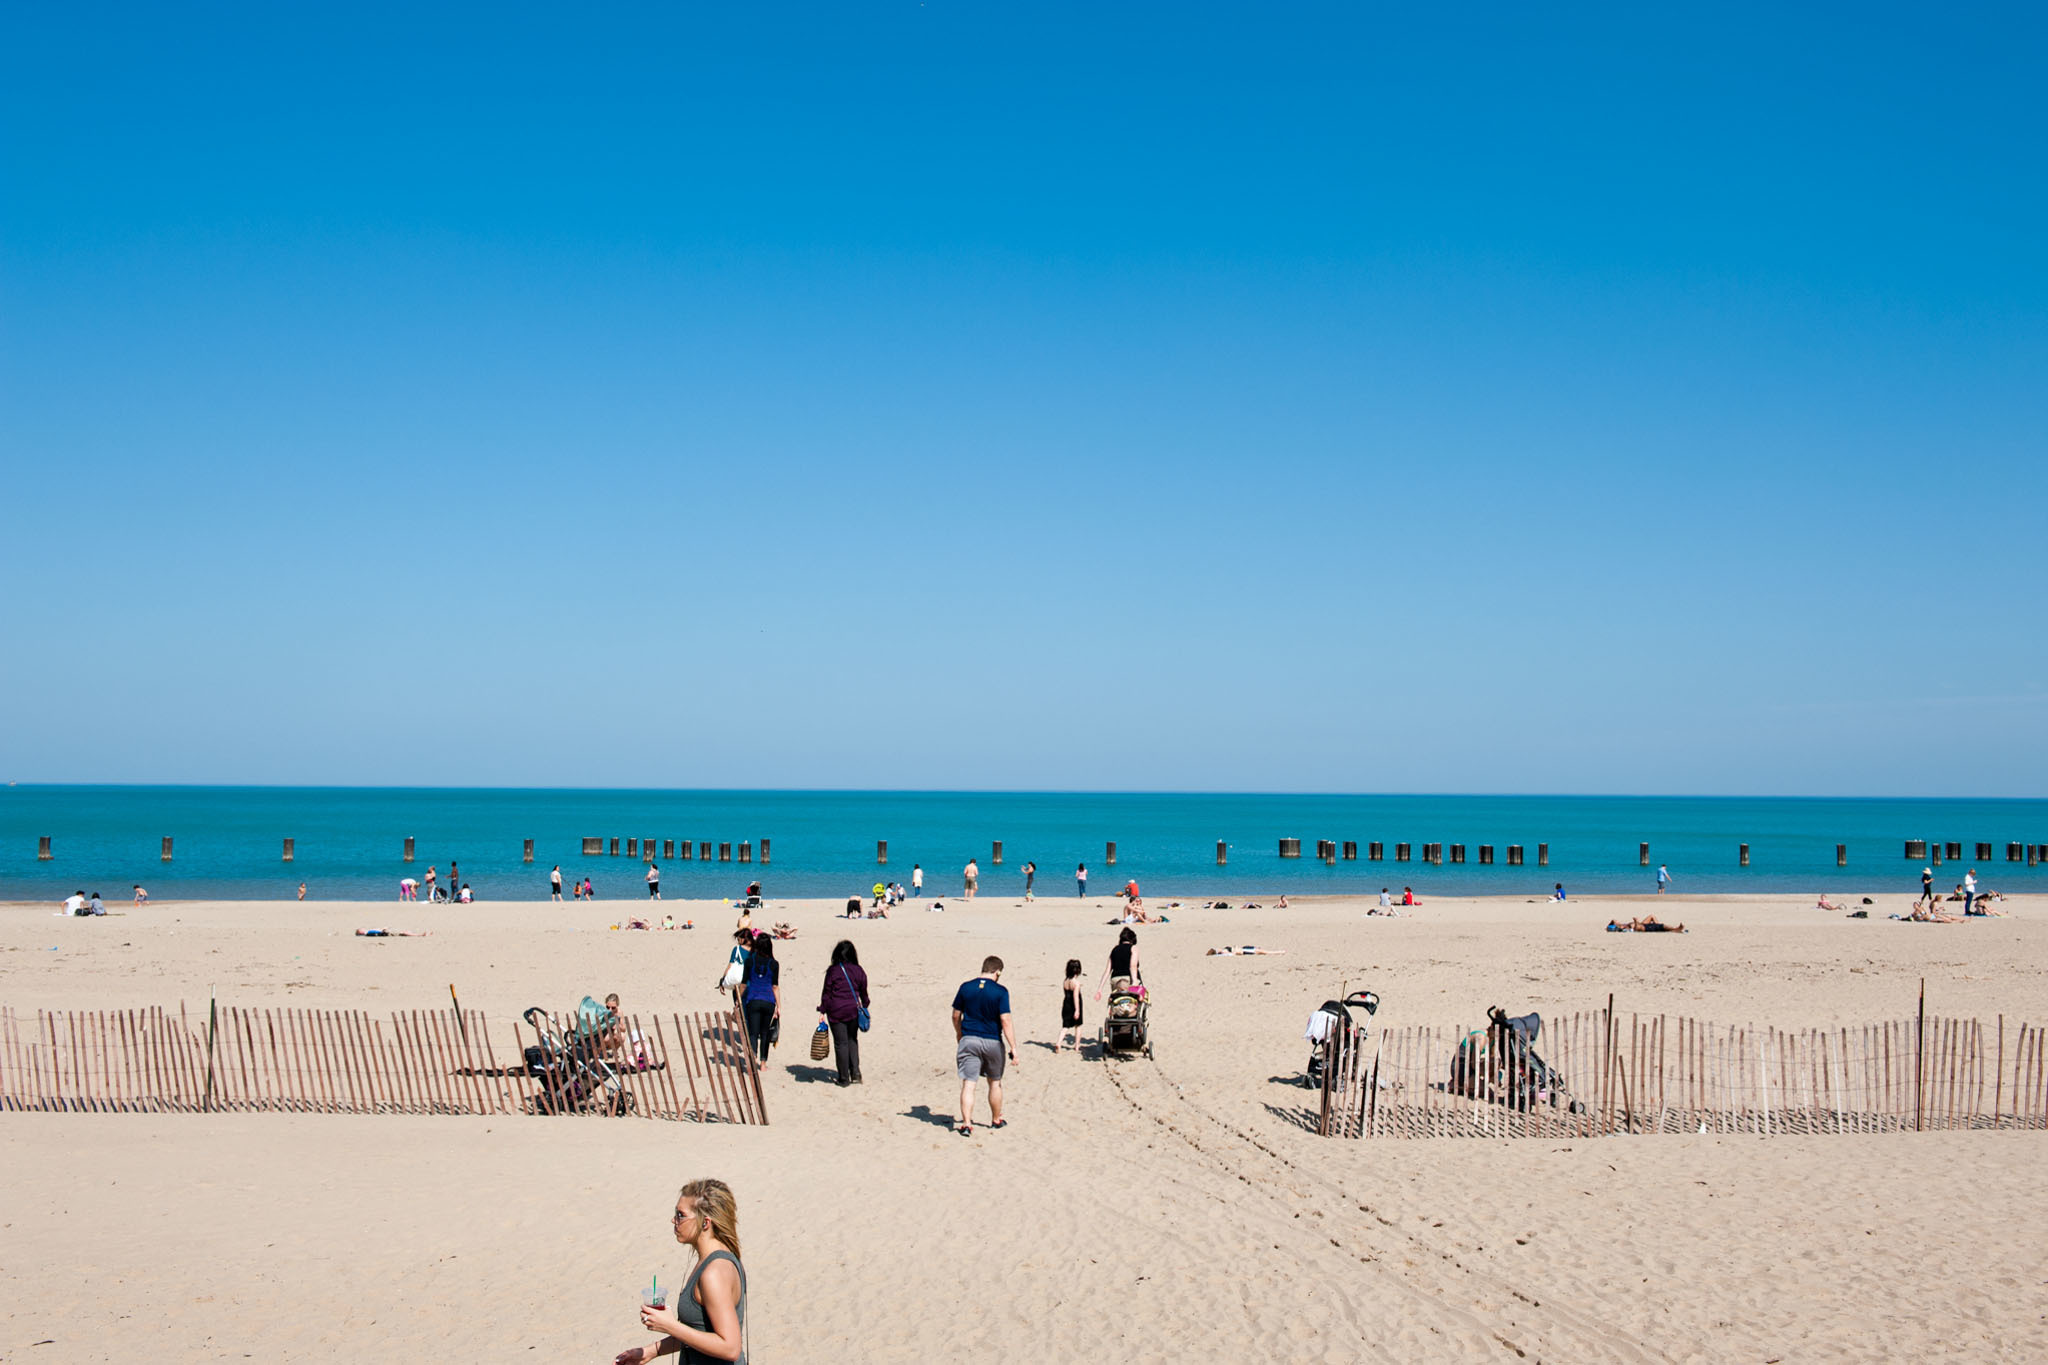 North Avenue Beach Things To Do In Lincoln Park Chicago - Chicago map north avenue beach